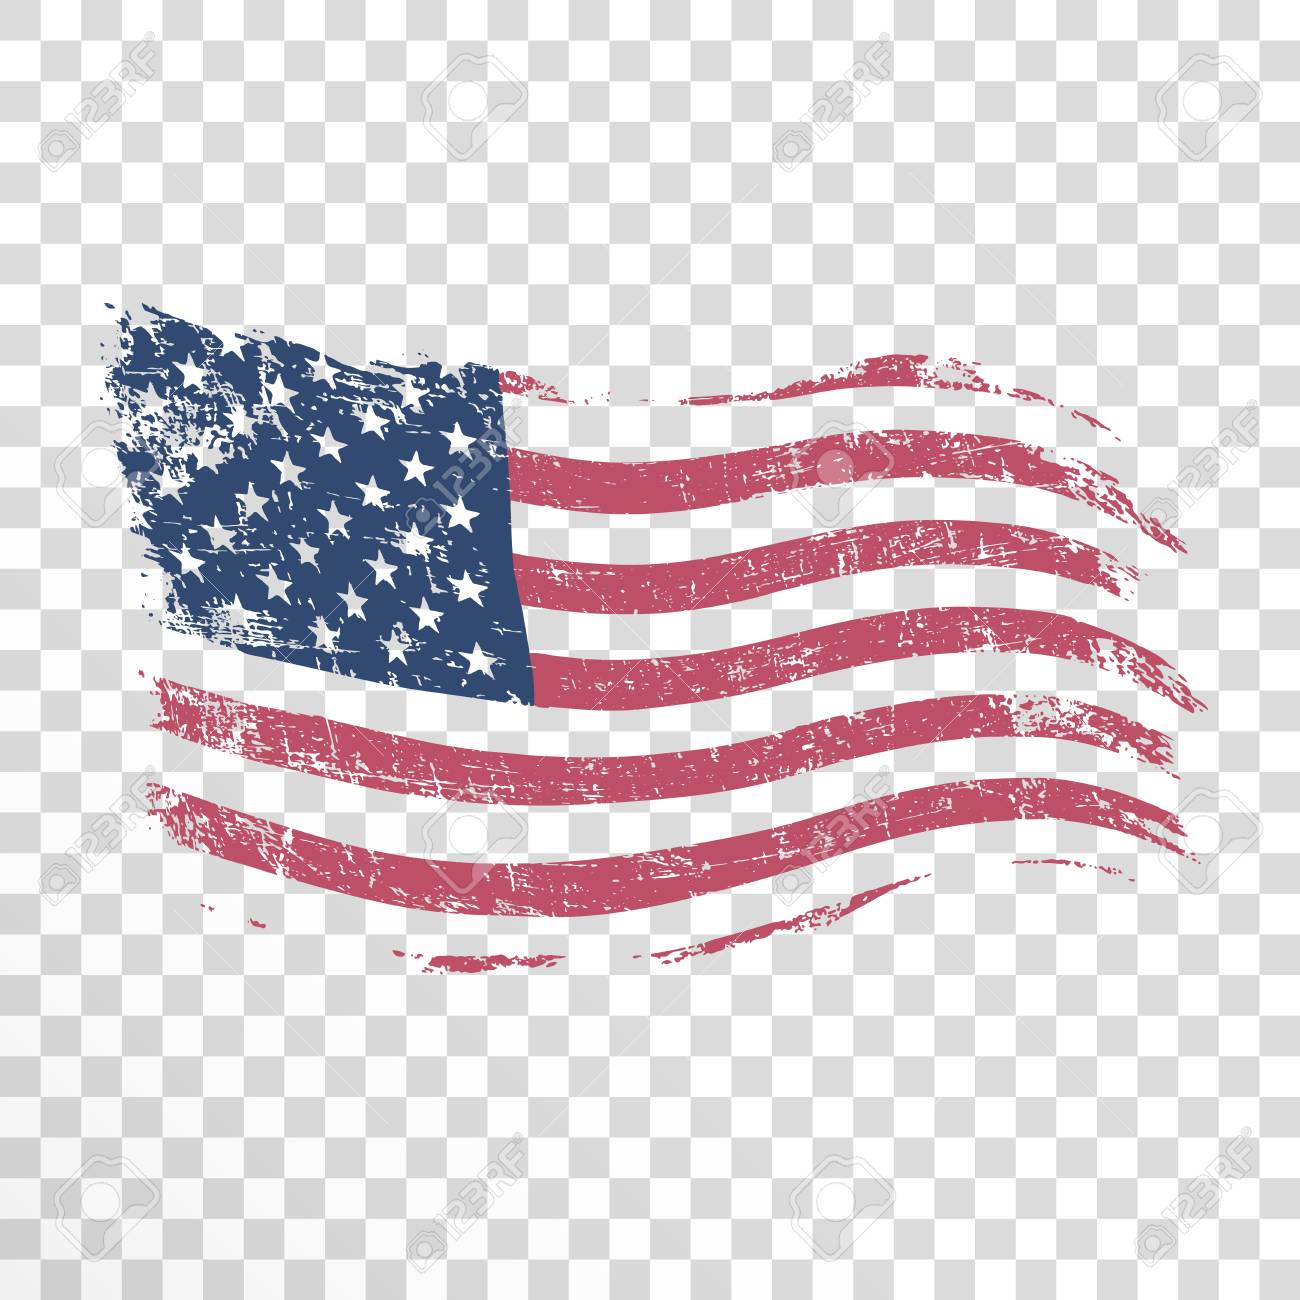 American flag in grunge style on transparent background. - 104826522